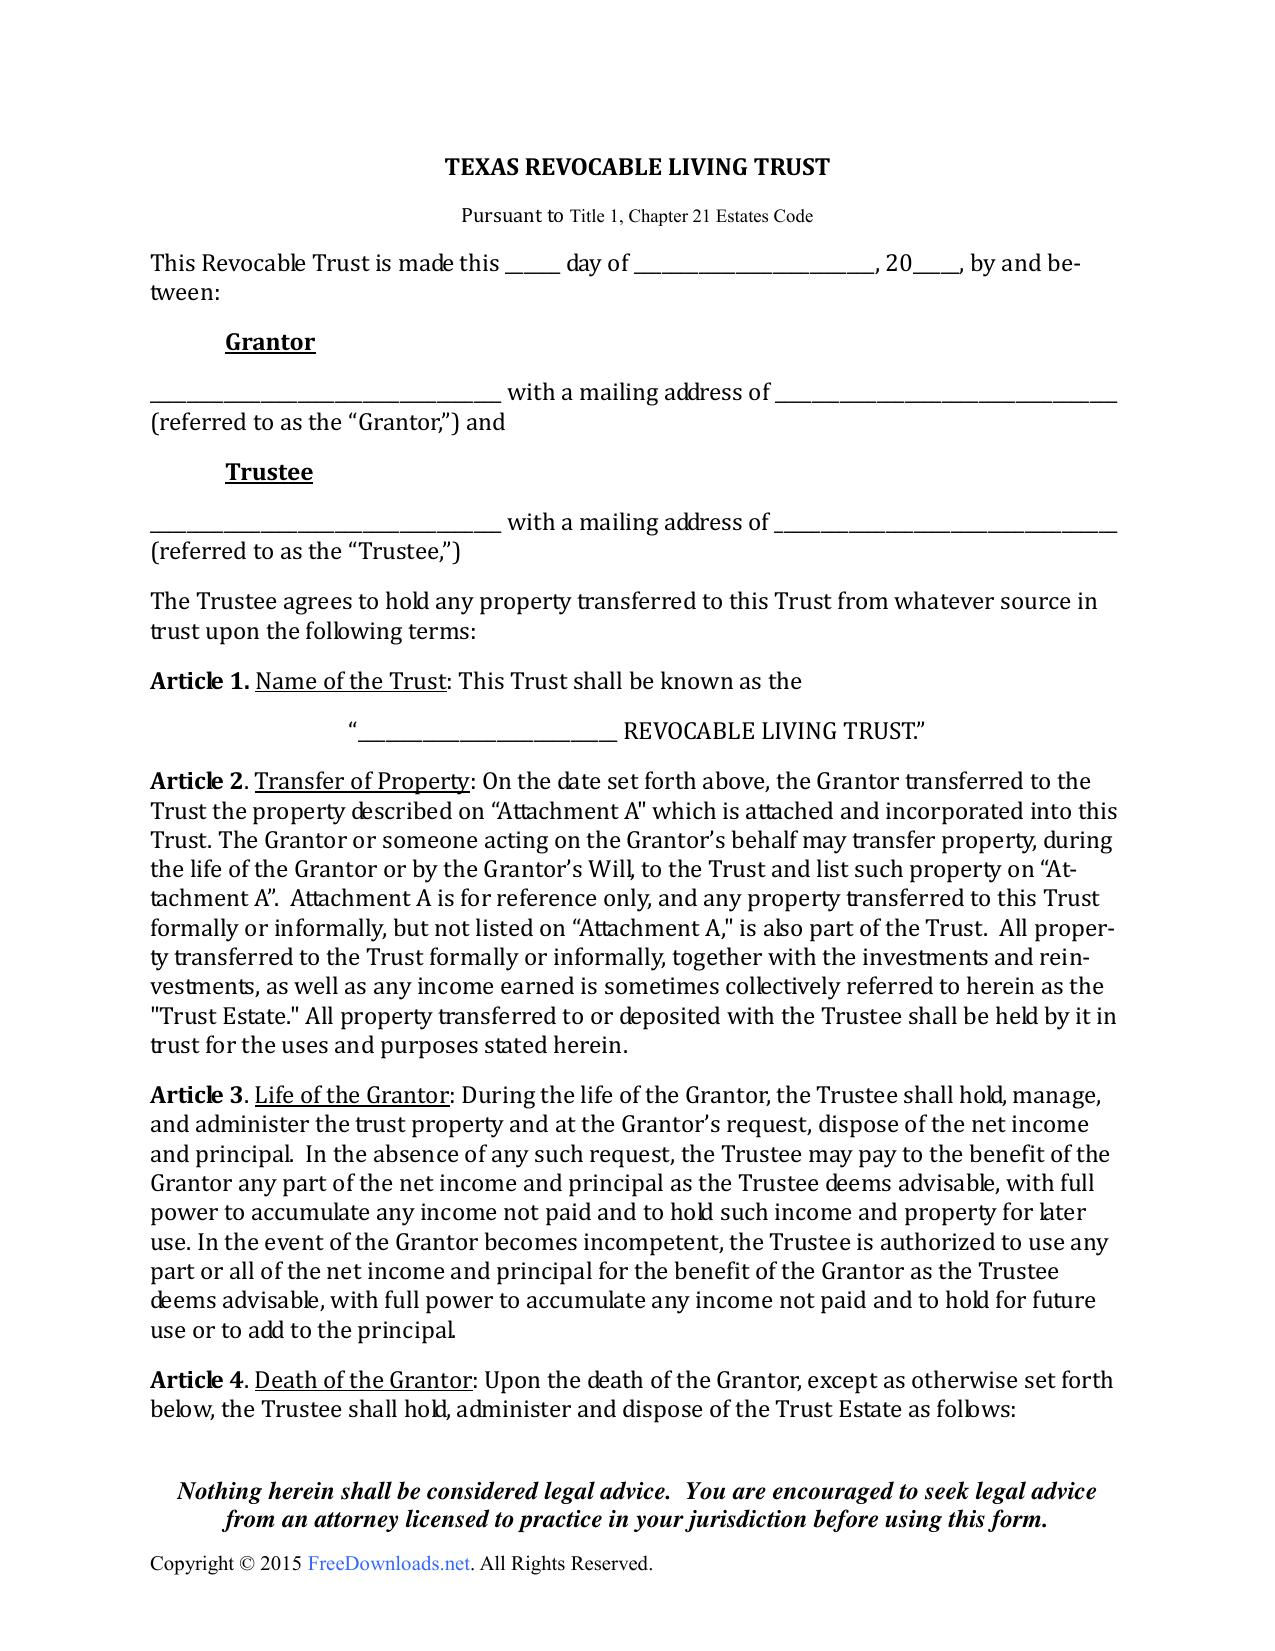 Revocable Trust Form Texas